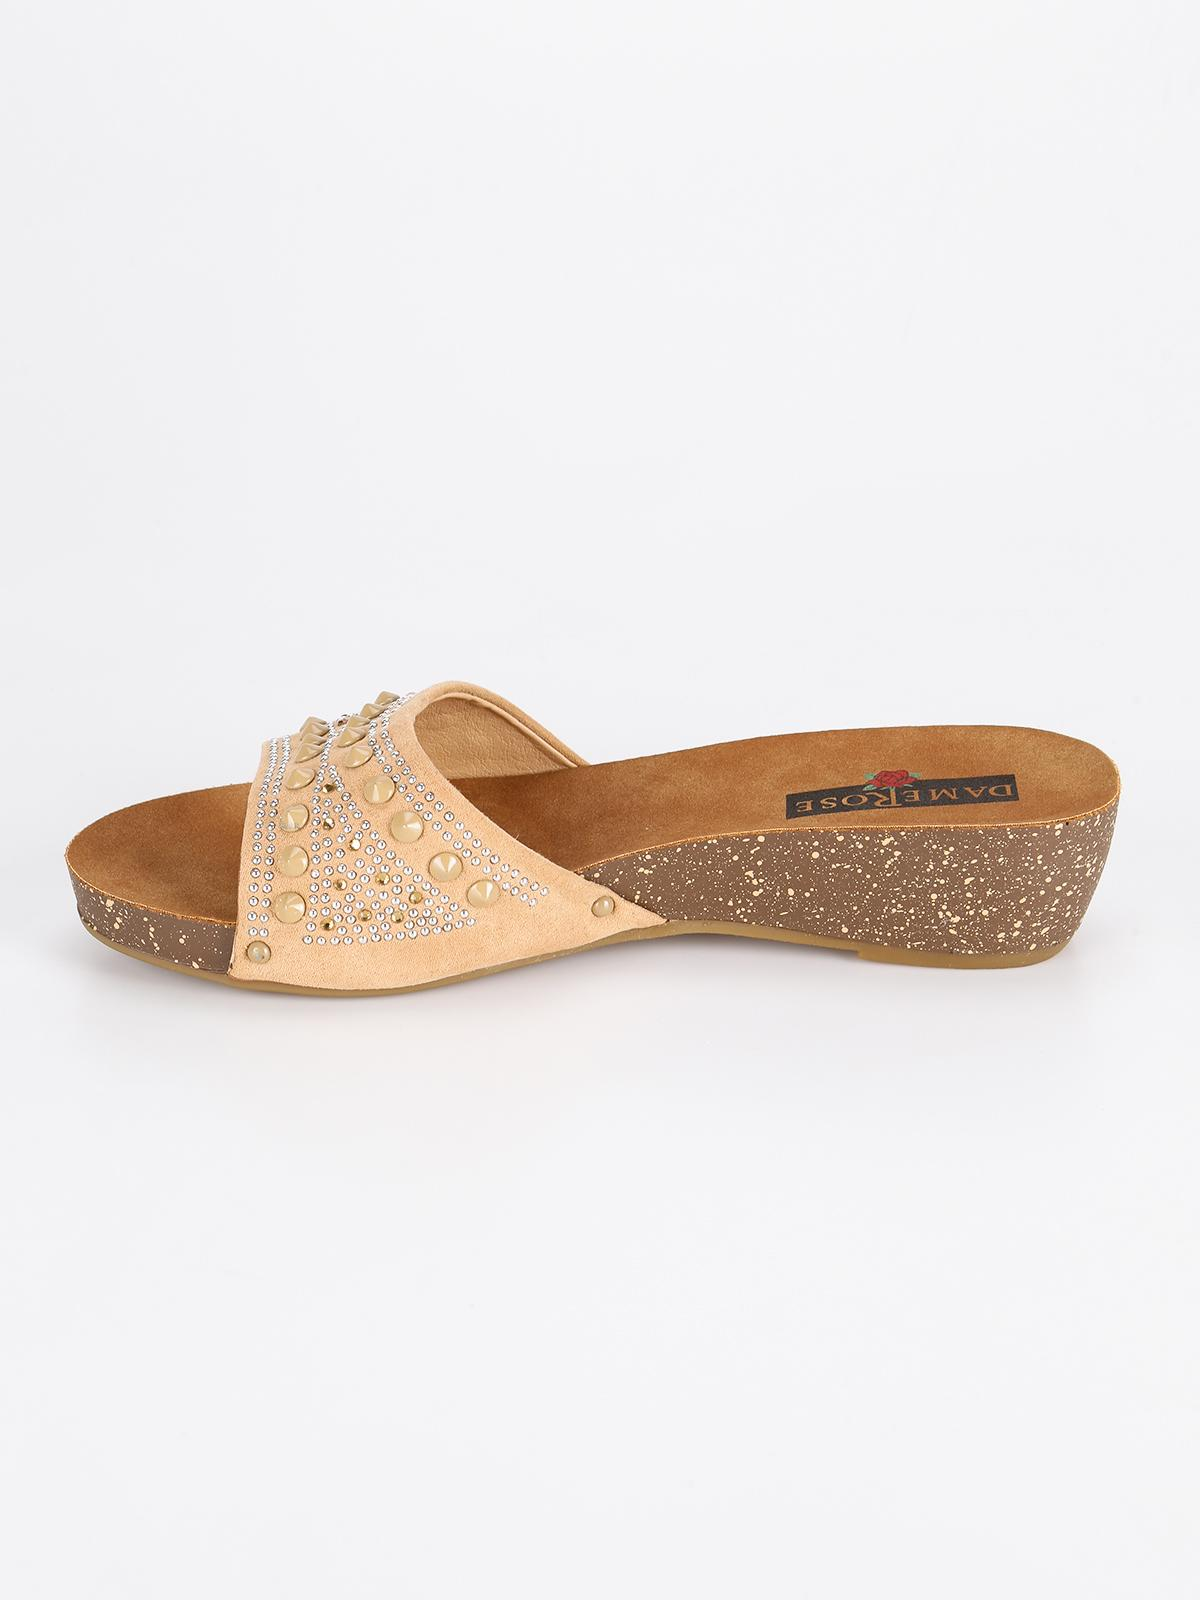 dame rose Slippers with wedge with studs | MecShopping